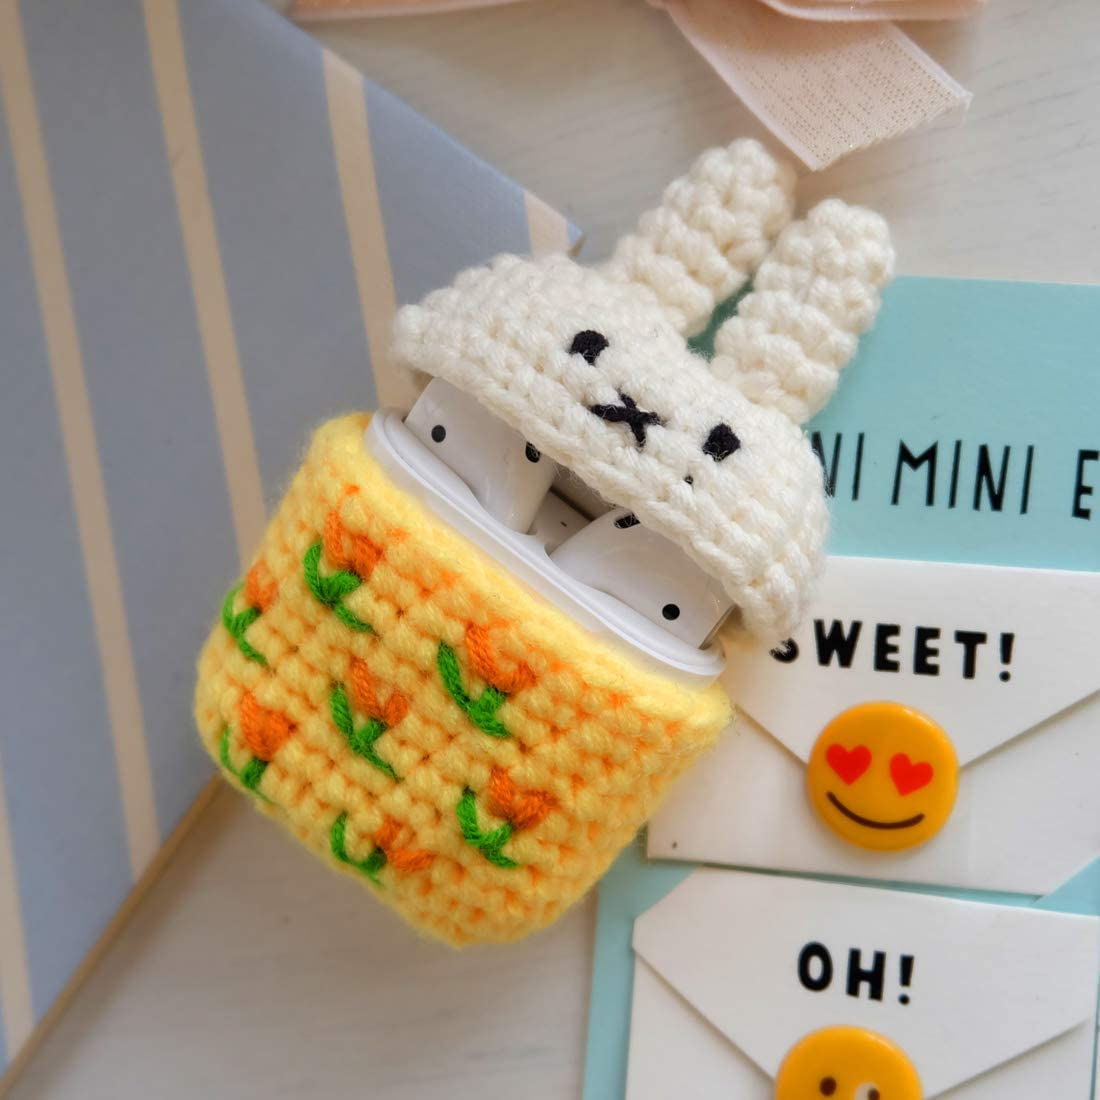 Little Duck MIRKOO Cute AirPods Case Cover Premium Handmade Knitted Protective Case Cover for AirPods//AirPods 2 Charging Case